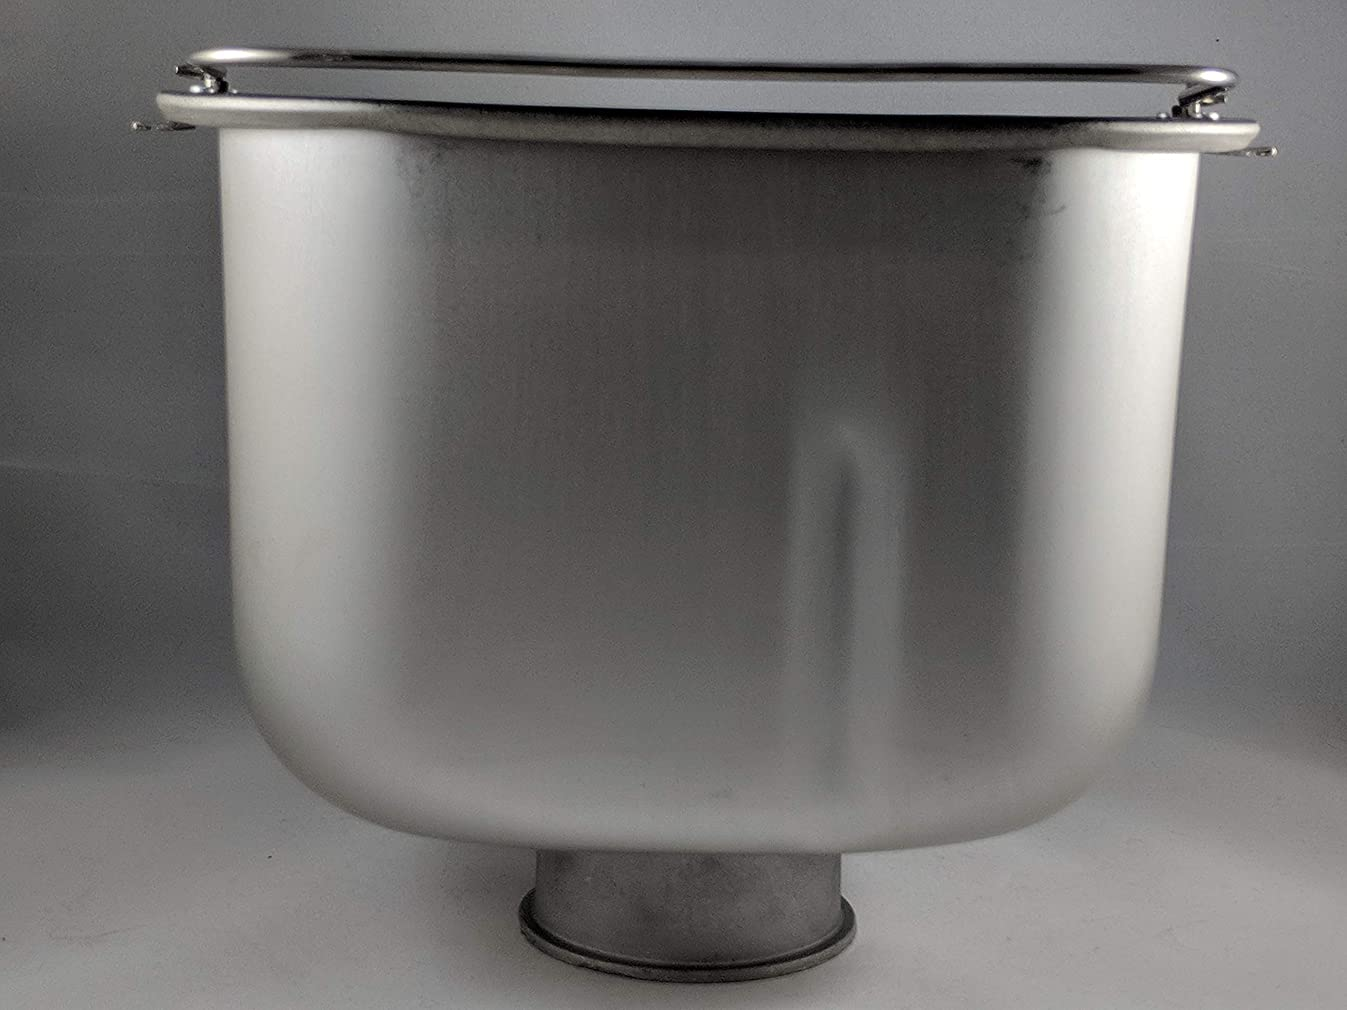 Compatible with Kenmore 100.12934 Bread maker pan (OEM)